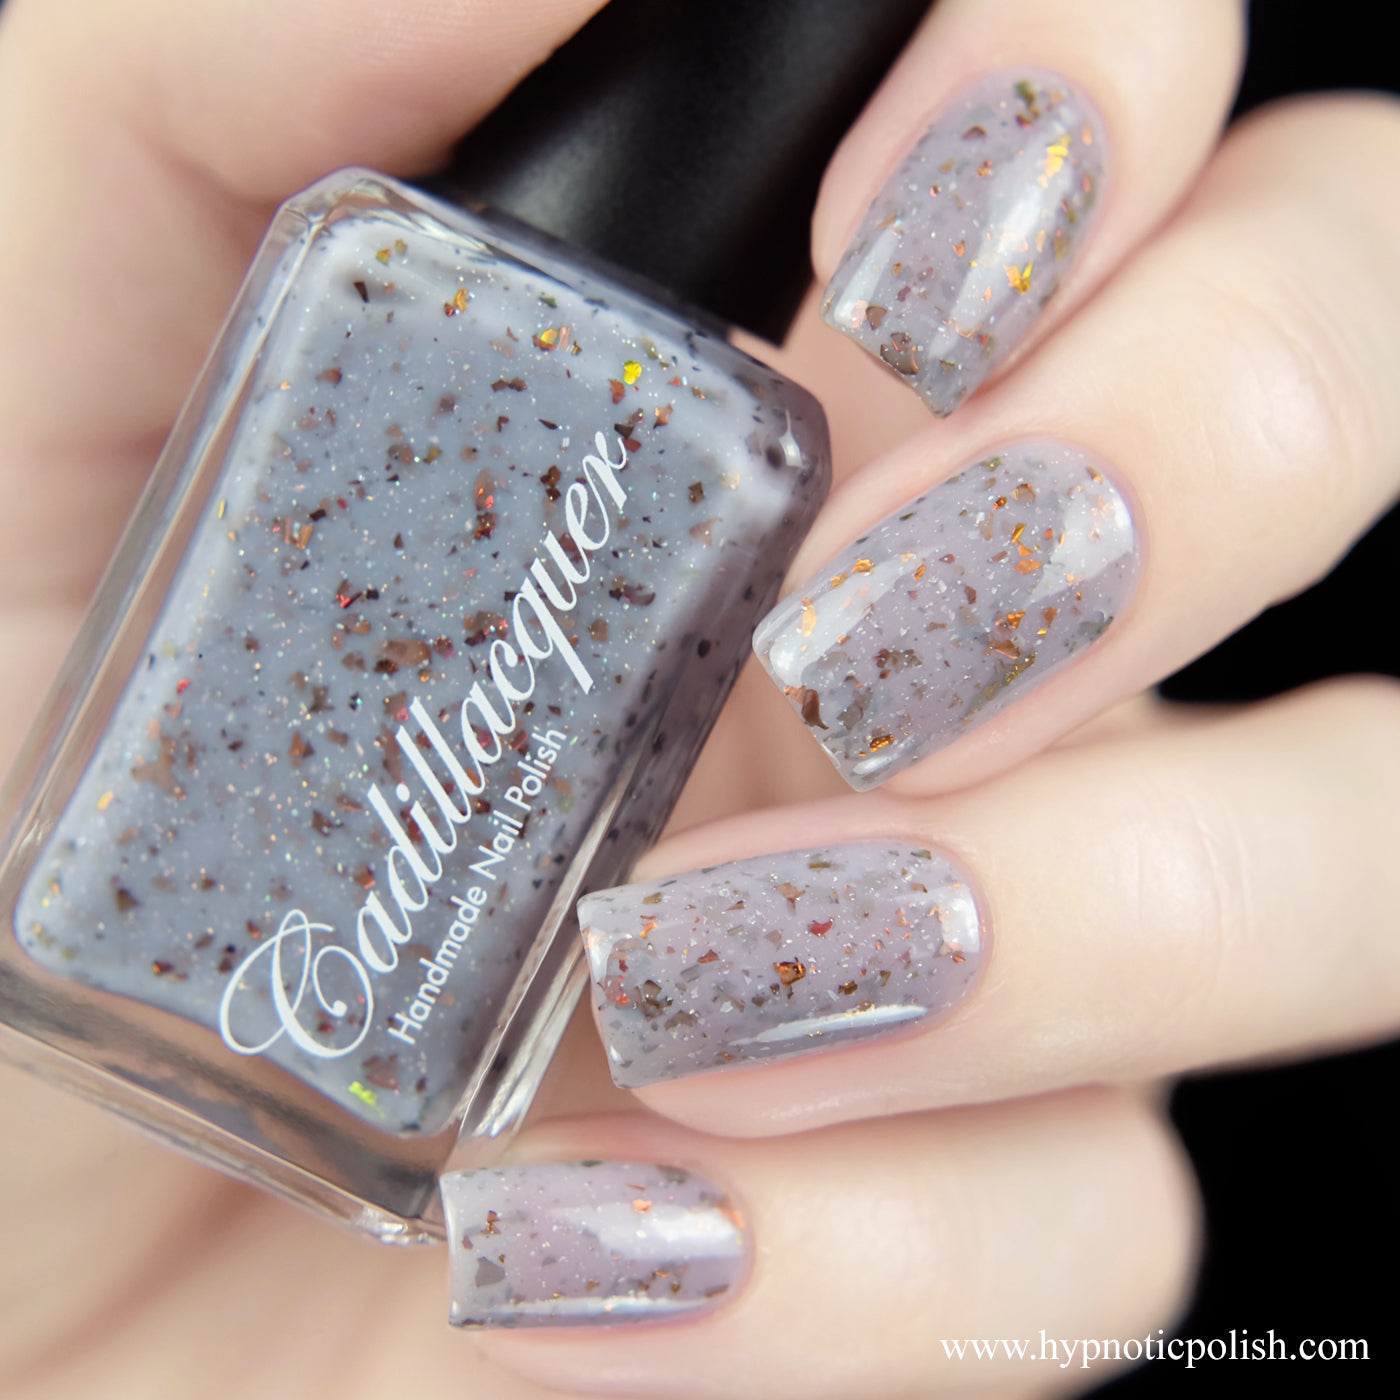 *PRE-SALE* Cadillacquer - Winter Berries - Store Exclusive